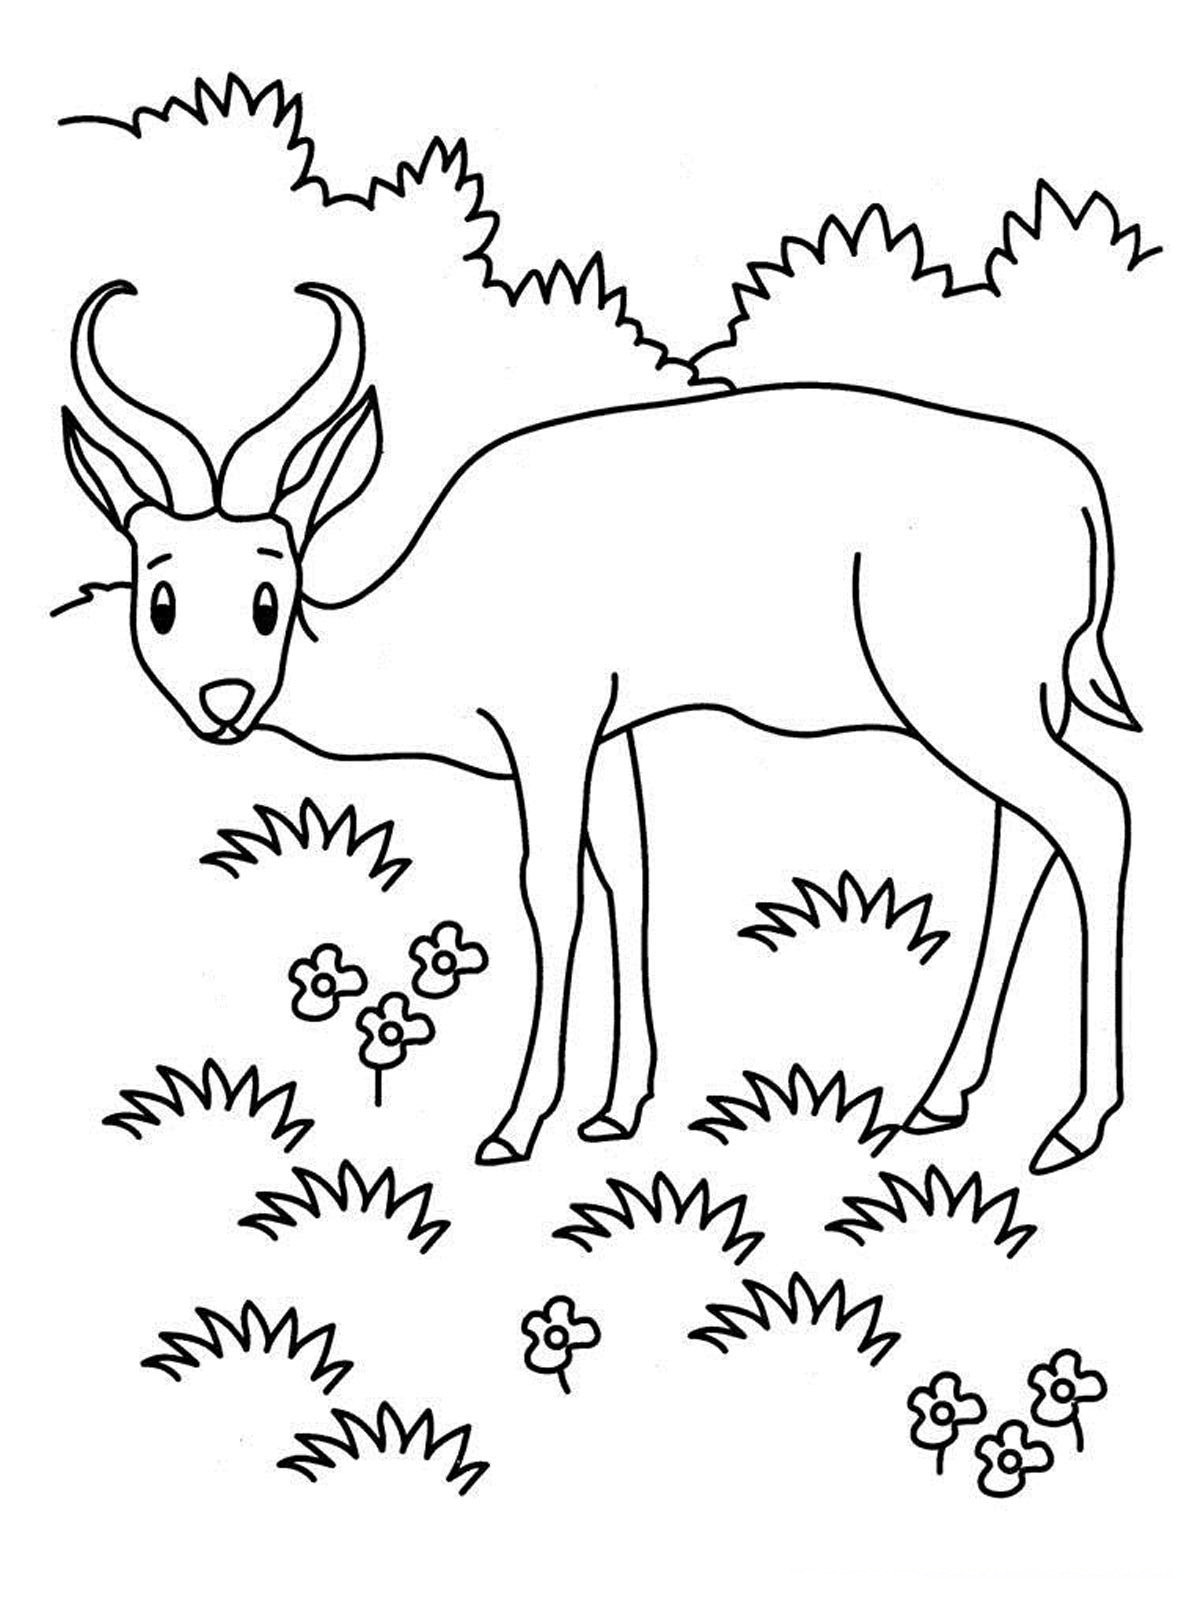 Grassland Coloring Pages - Coloring Home